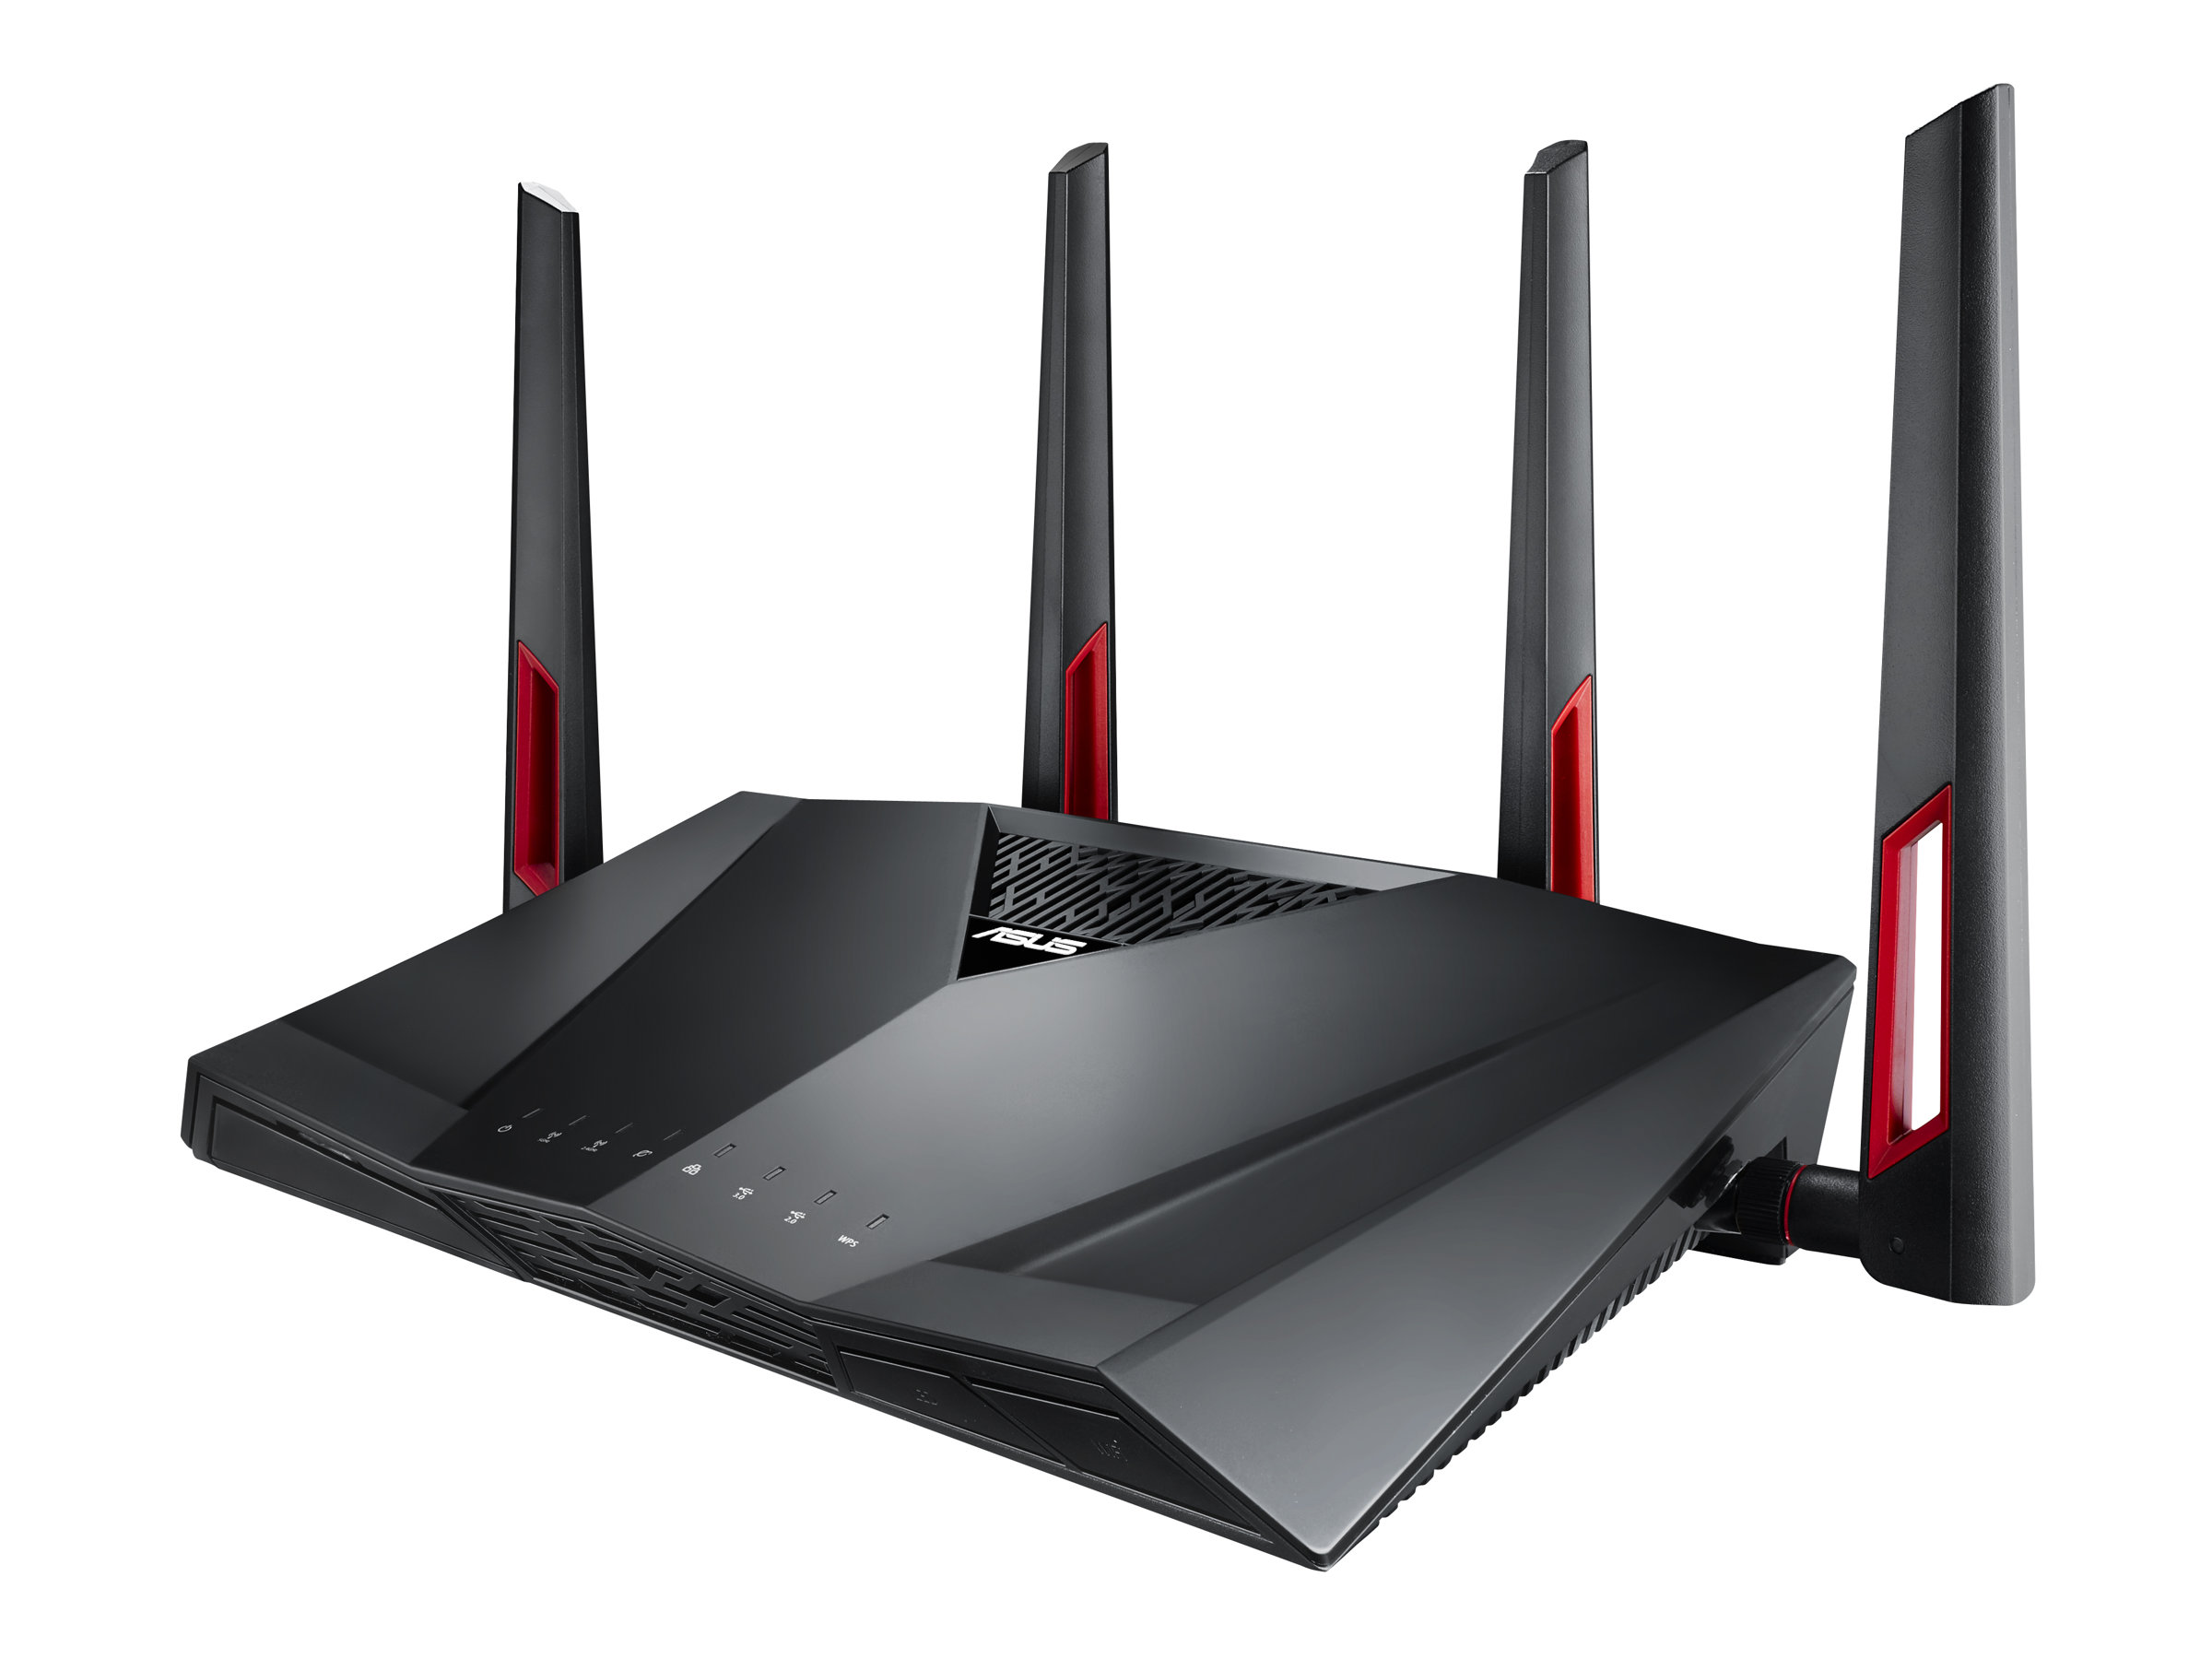 ASUS RT-AC88U - Wireless Router - 8-Port-Switch - GigE - 802.11a/b/g/n/ac - Dual-Band